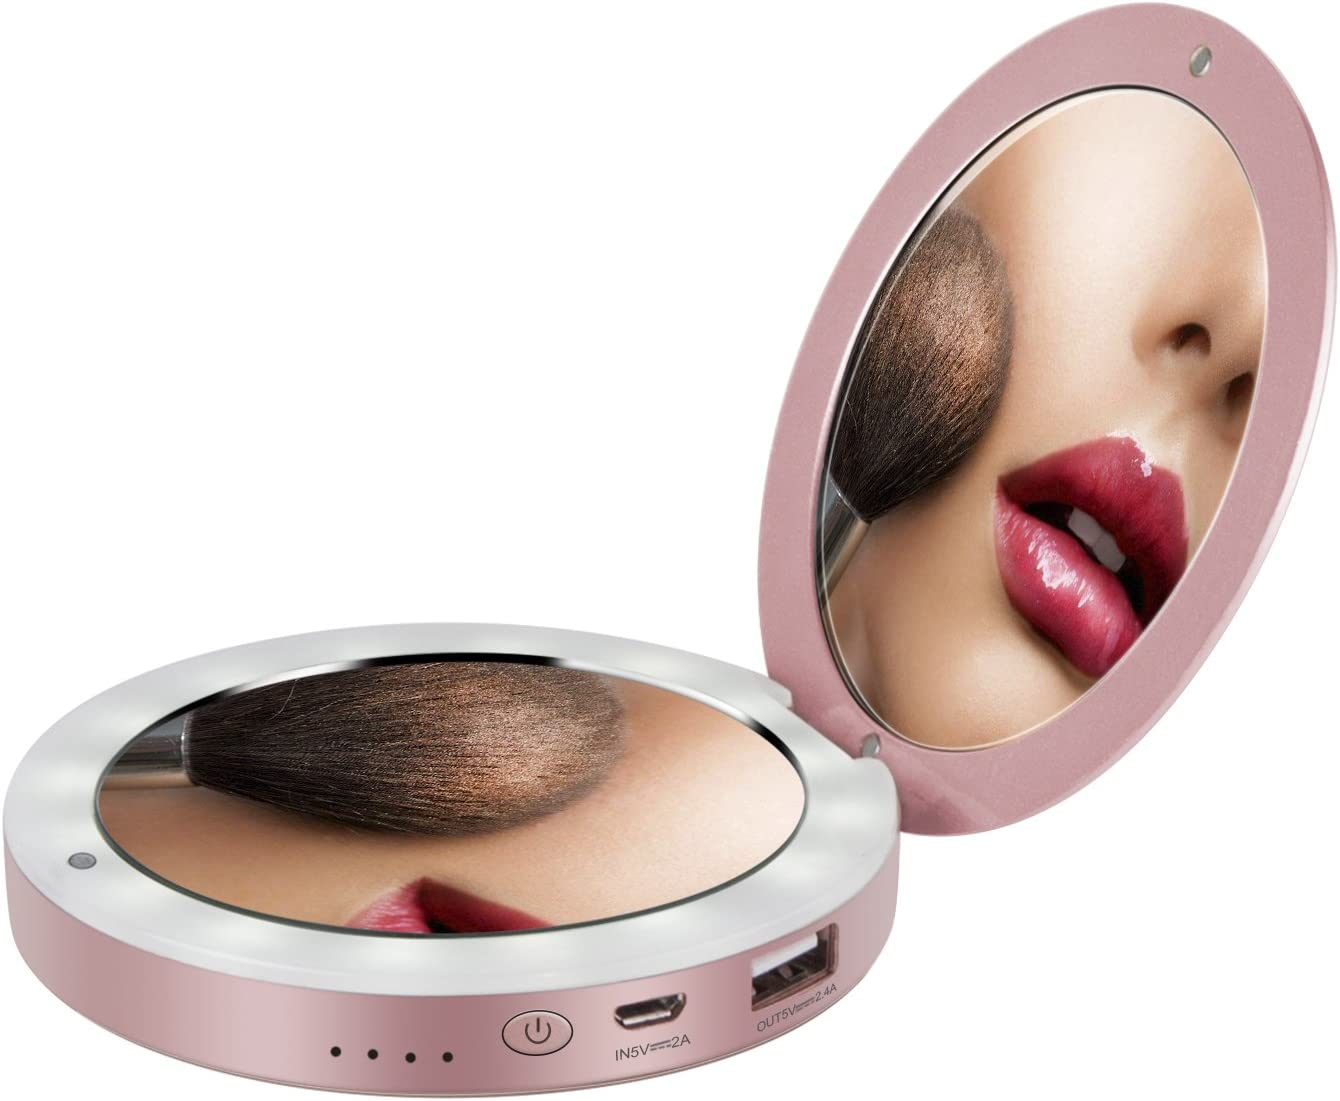 shinngo 3000mAh Portable Charger Mirror Compact Vanity Mirror with Lights for Personal Handheld Makeup (Rosegold)